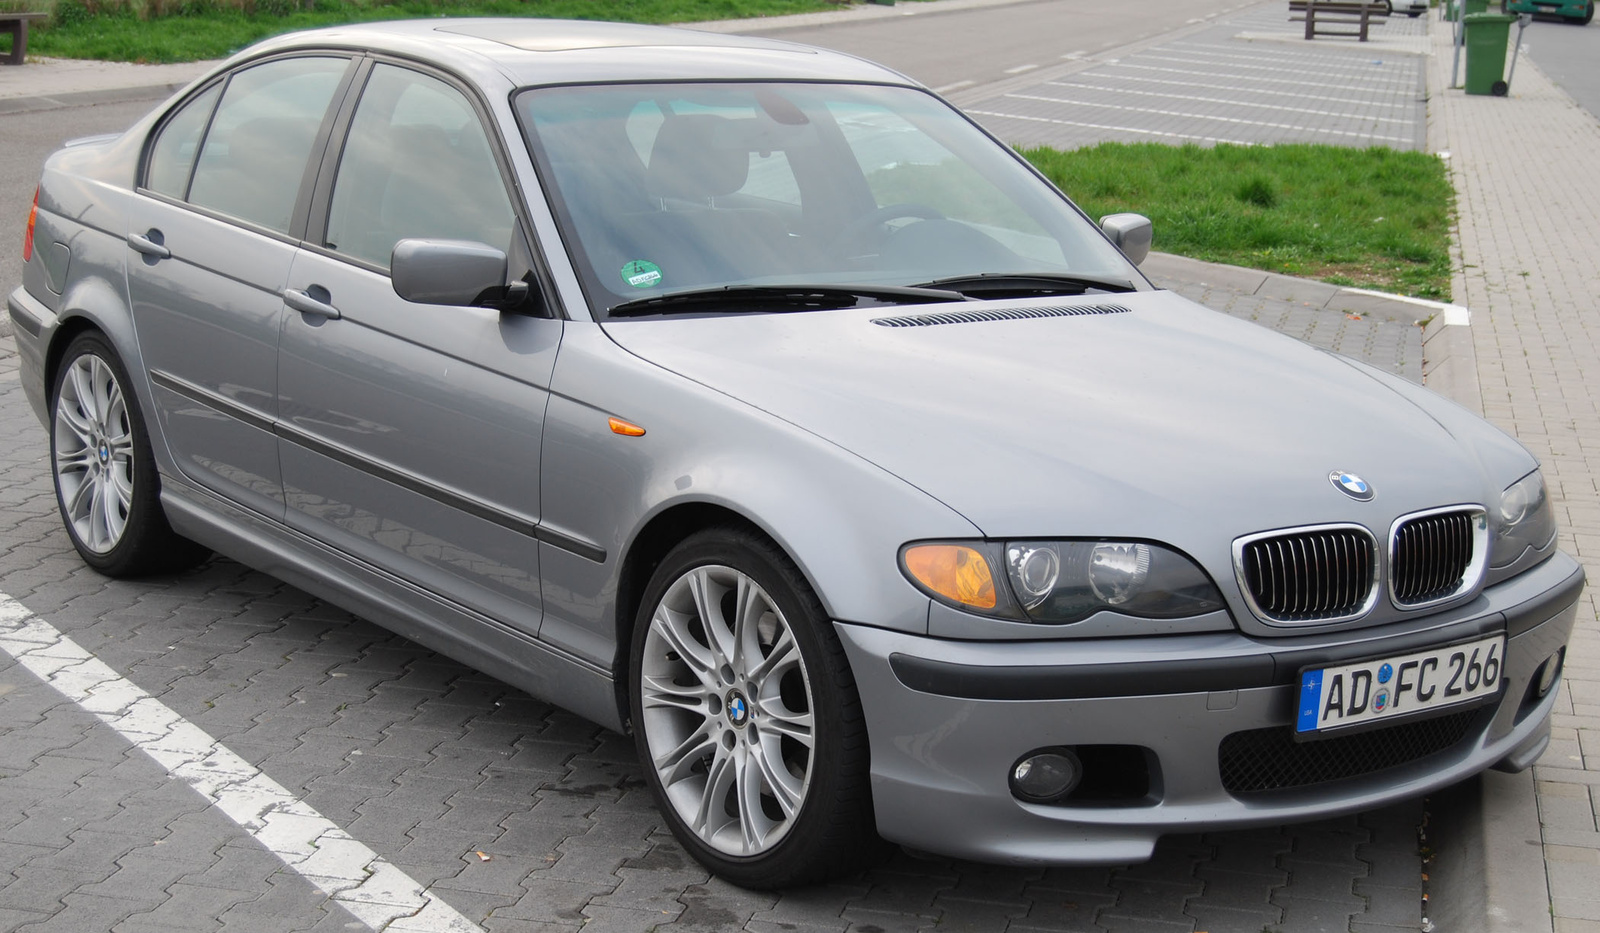 Bmw 325xi 2008 Review Amazing Pictures And Images Look